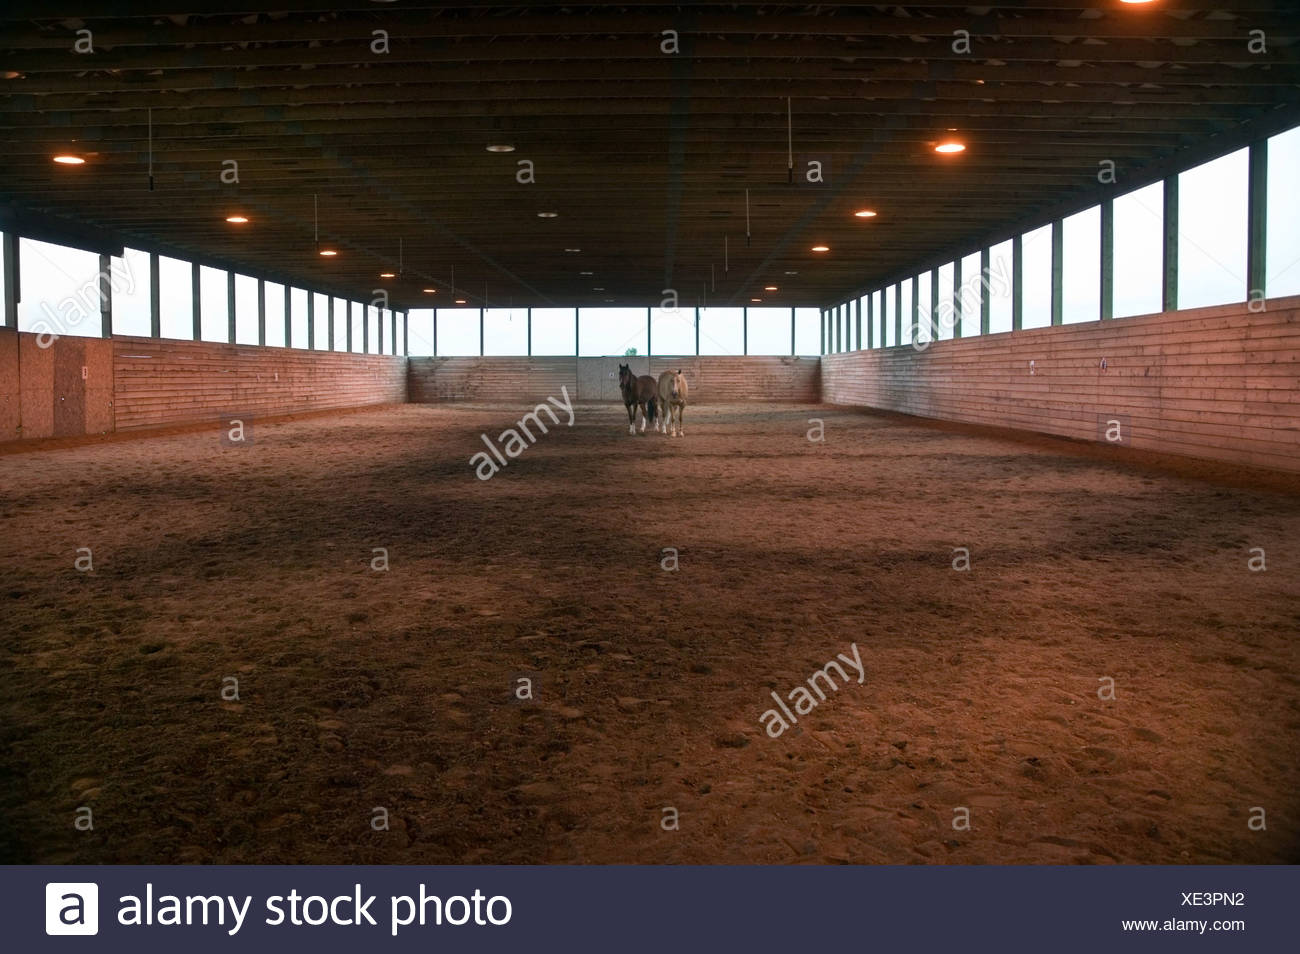 Horses in arena - Stock Image